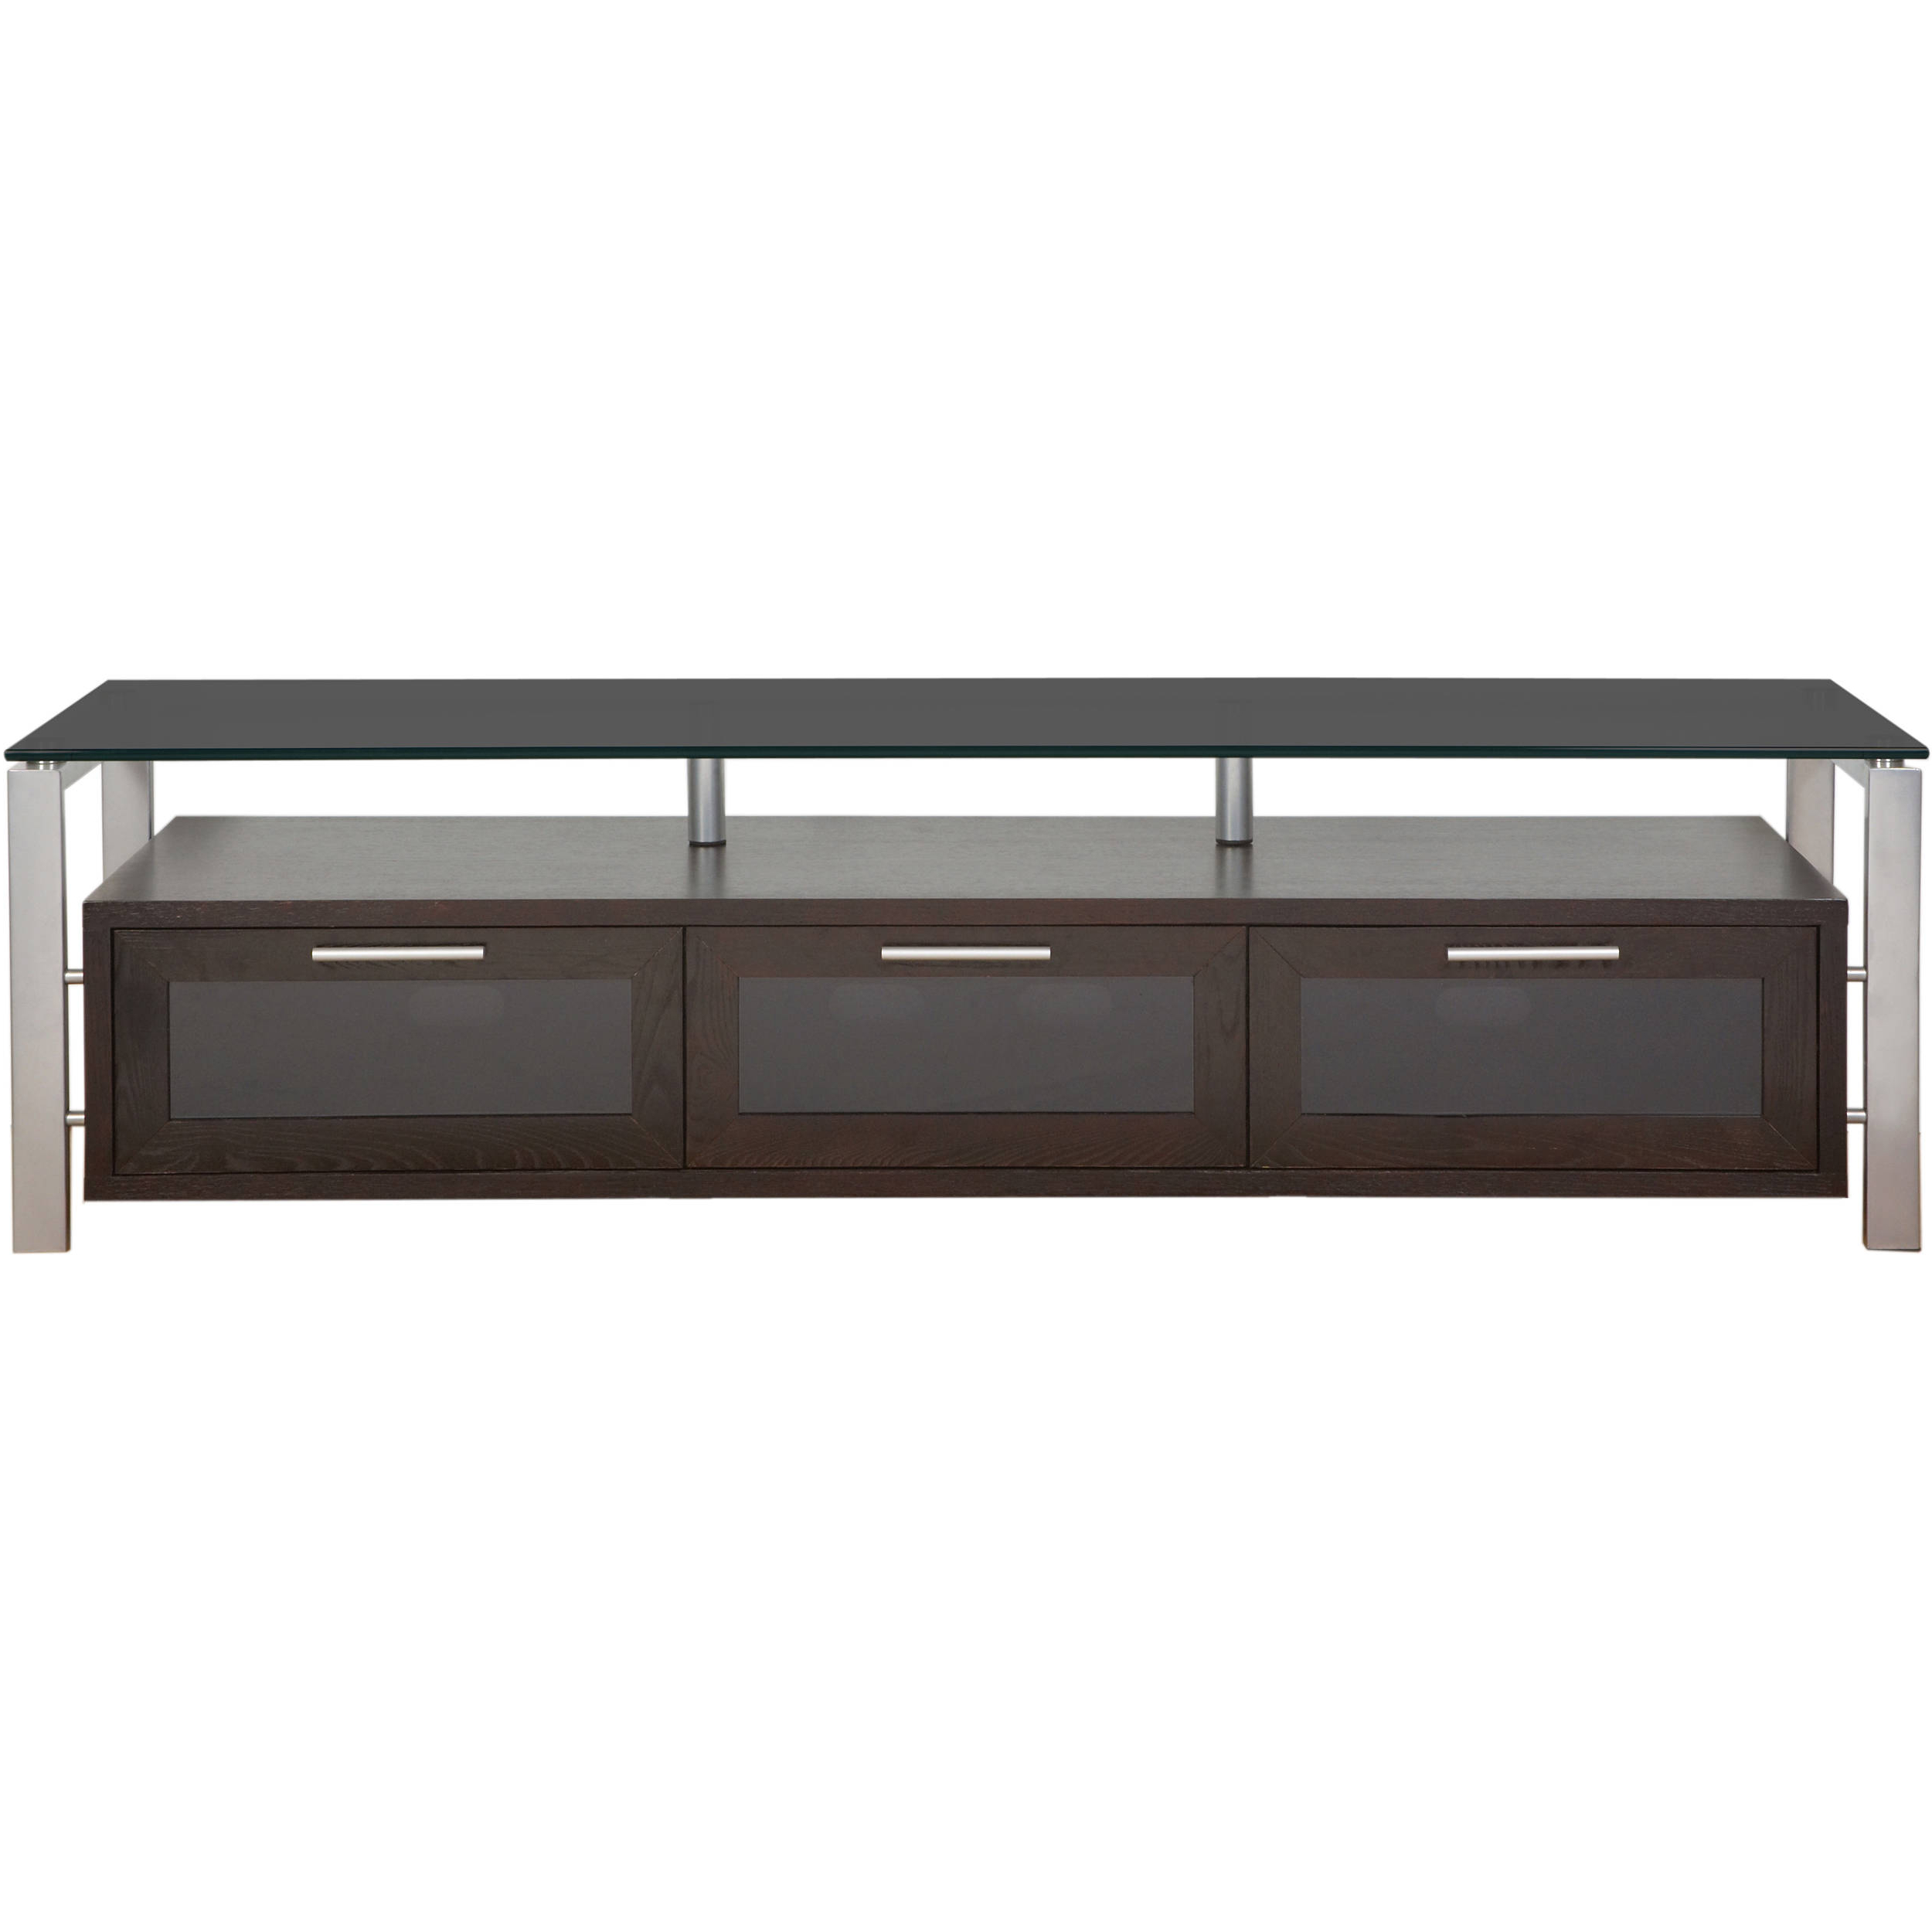 Favorite Glass Tv Cabinets Throughout Plateau Decor 71 Tv Stand Decor 71 (E) S Bg B&h Photo Video (Gallery 3 of 20)